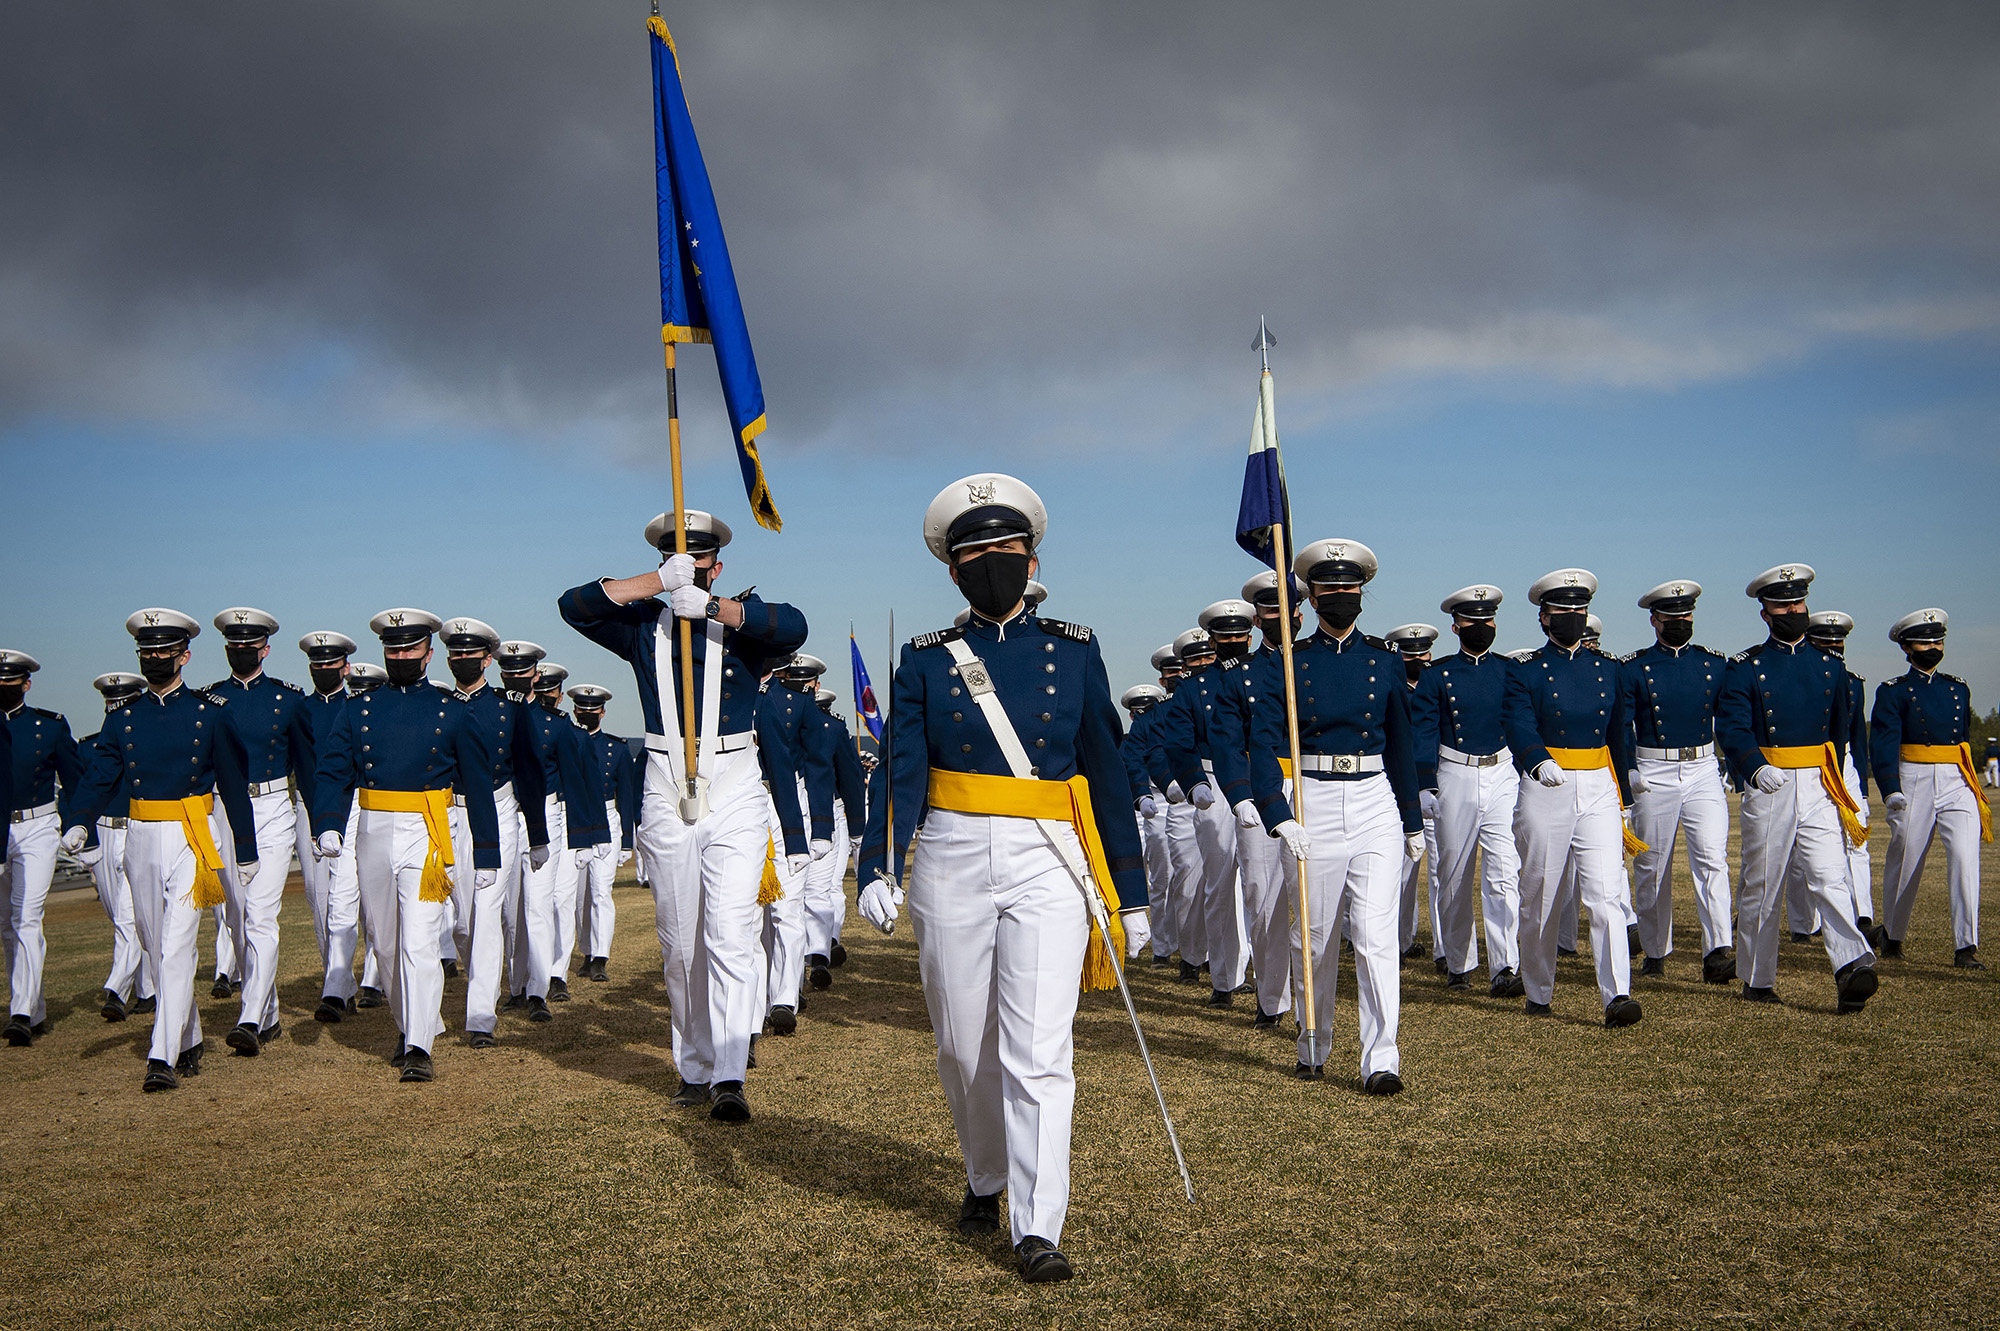 Air Force Academy cadets march on Stillman Field during the pass in review portion of the Founder's Day Parade at Stillman Field in Colorado Spring, Colo., April 2, 2021. (Joshua Armstrong/Air Force)